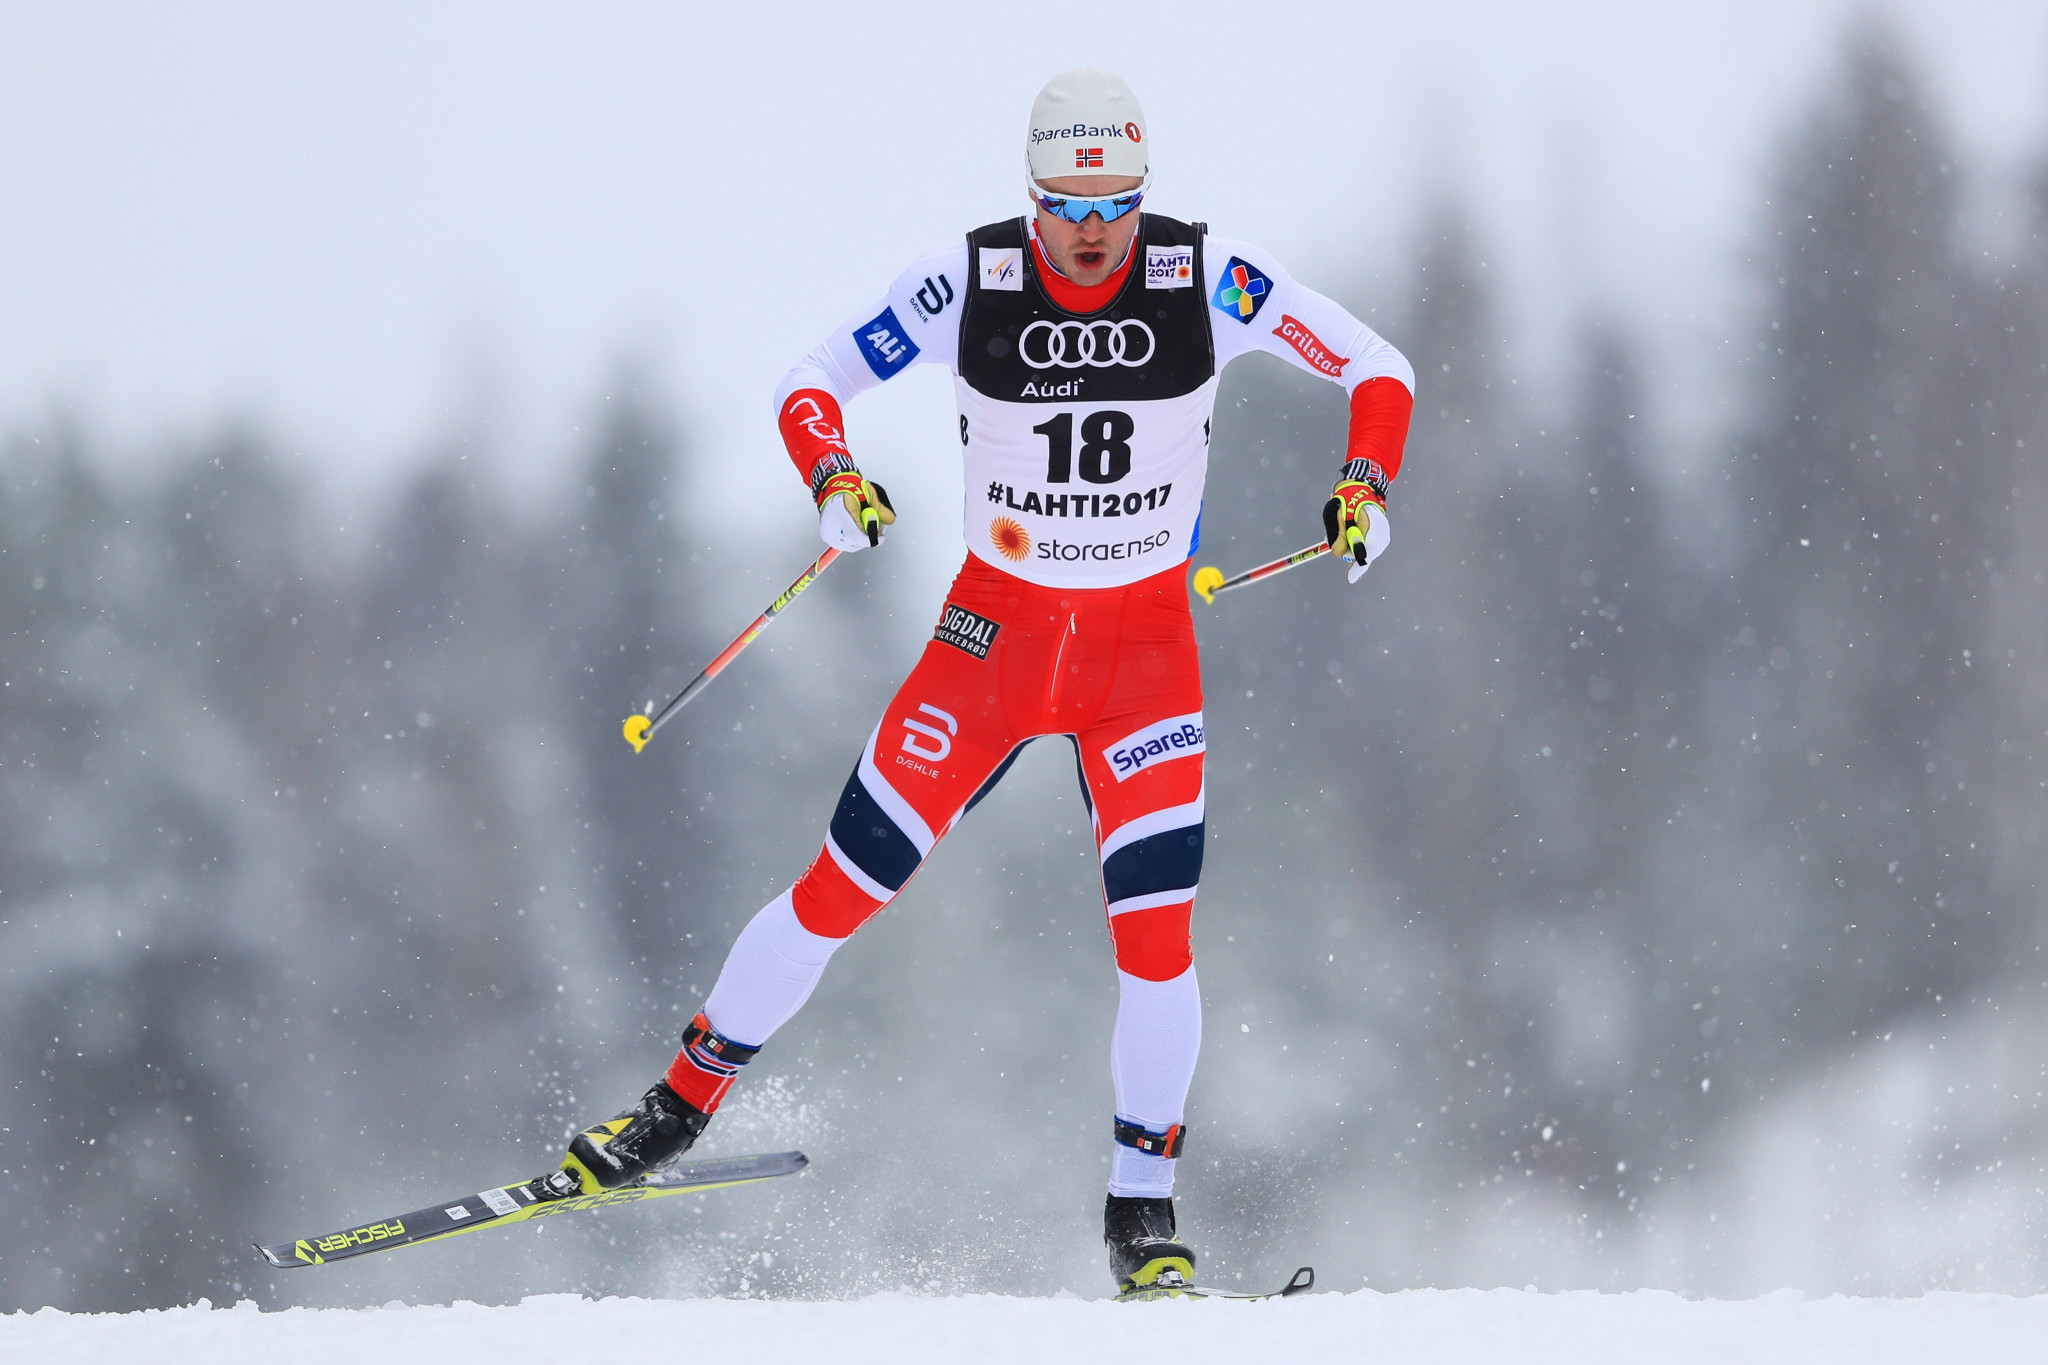 Norway and Sweden control team sprint action at FIS Cross Country World Cup in Dresden